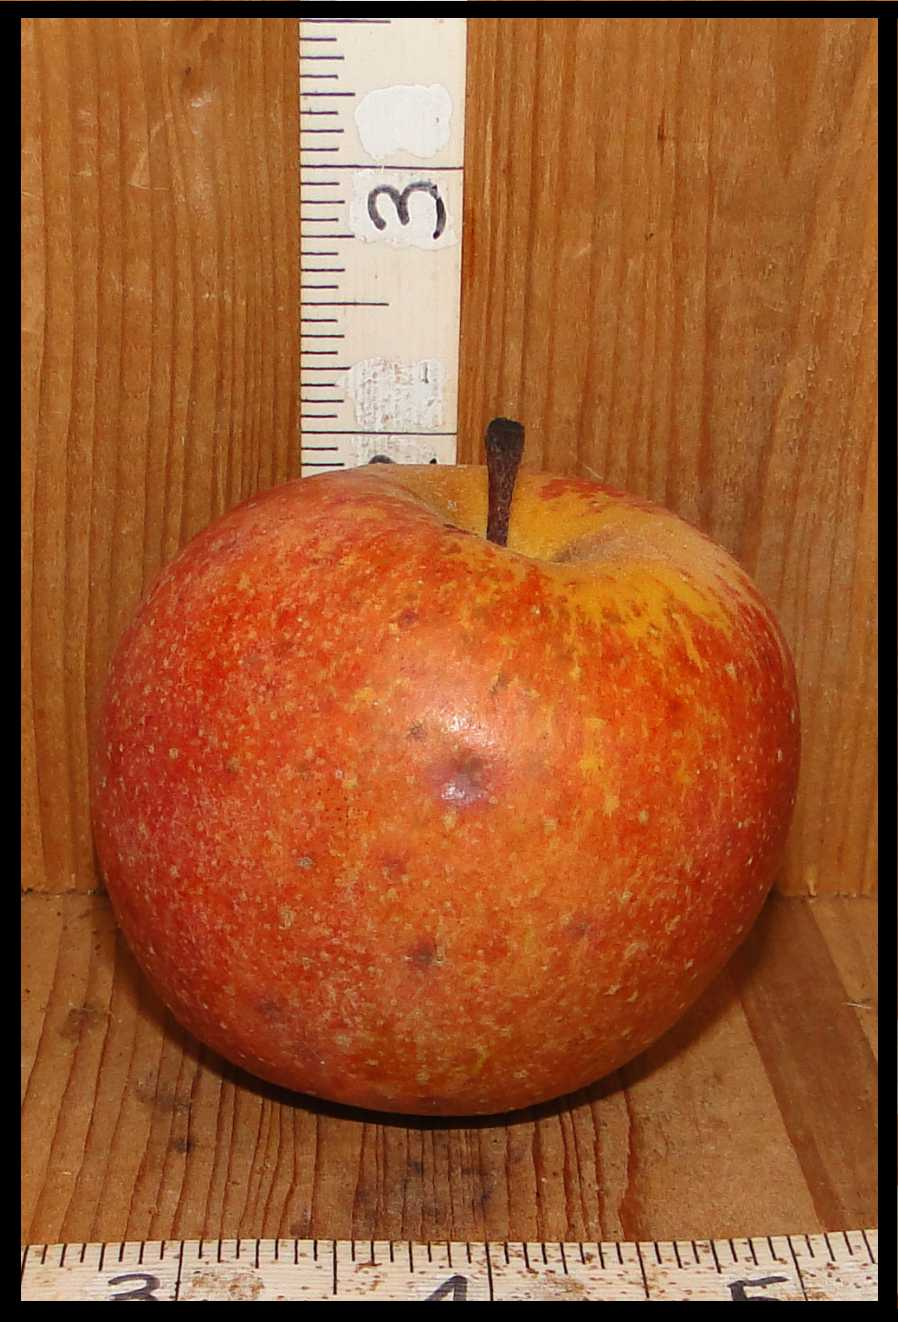 red and tan mottled apple